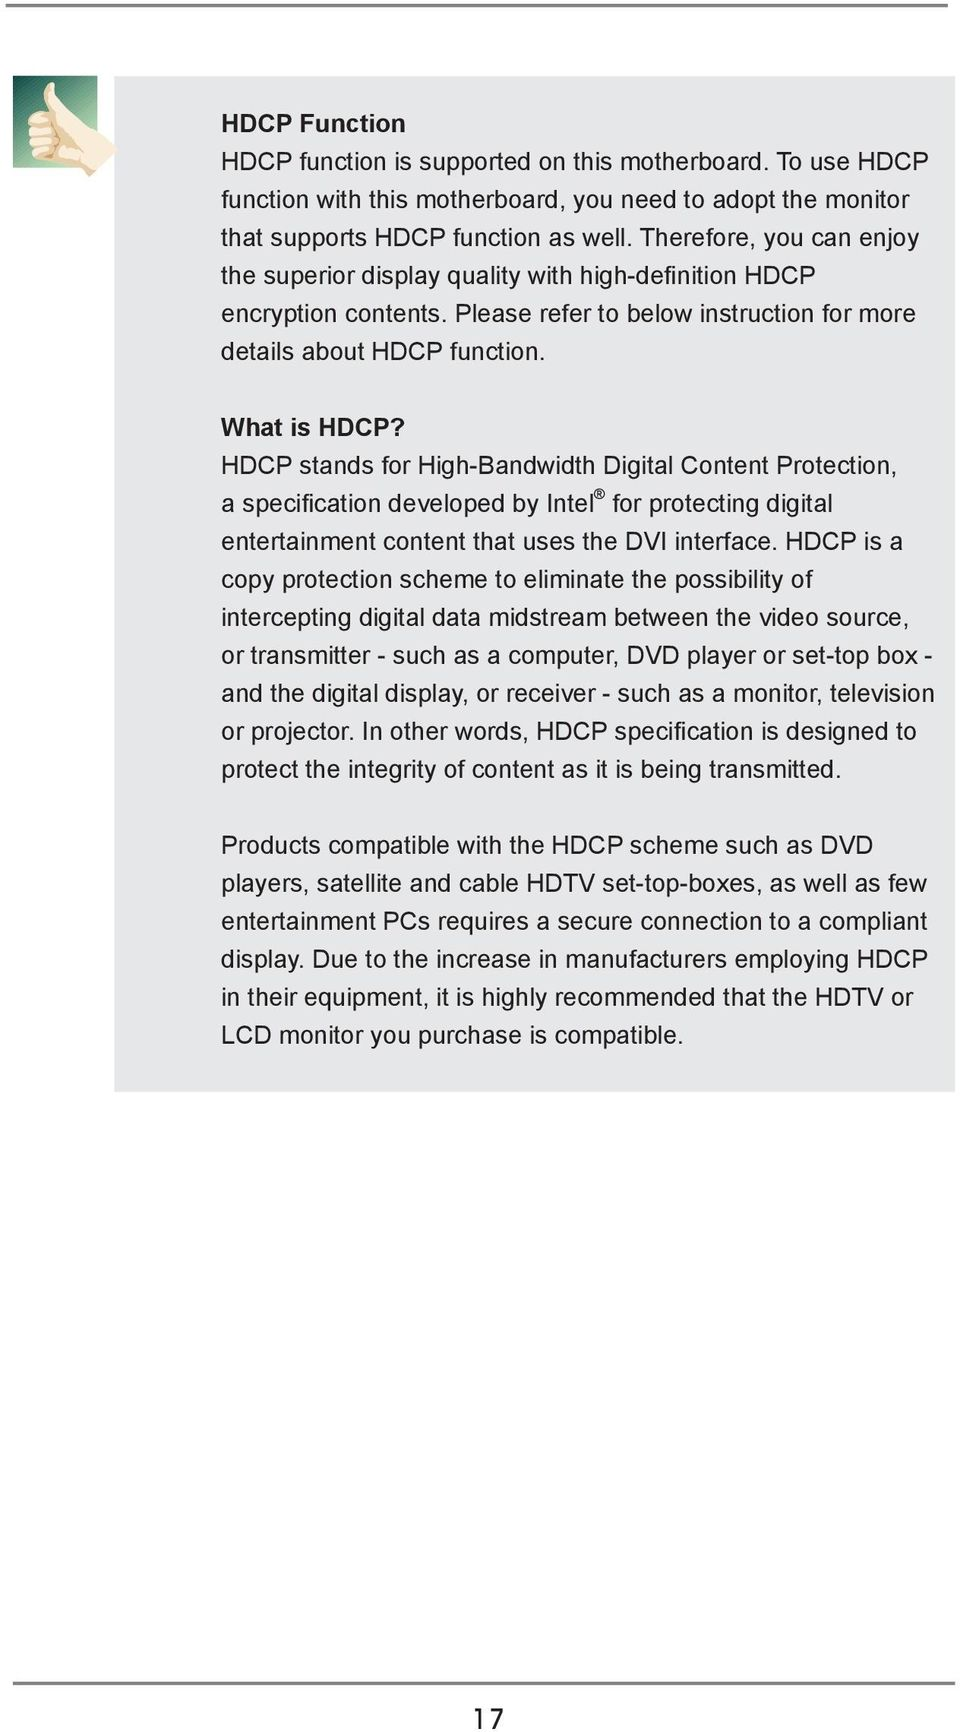 HDCP stands for High-Bandwidth Digital Content Protection, a speciication developed by Intel for protecting digital entertainment content that uses the DVI interface.